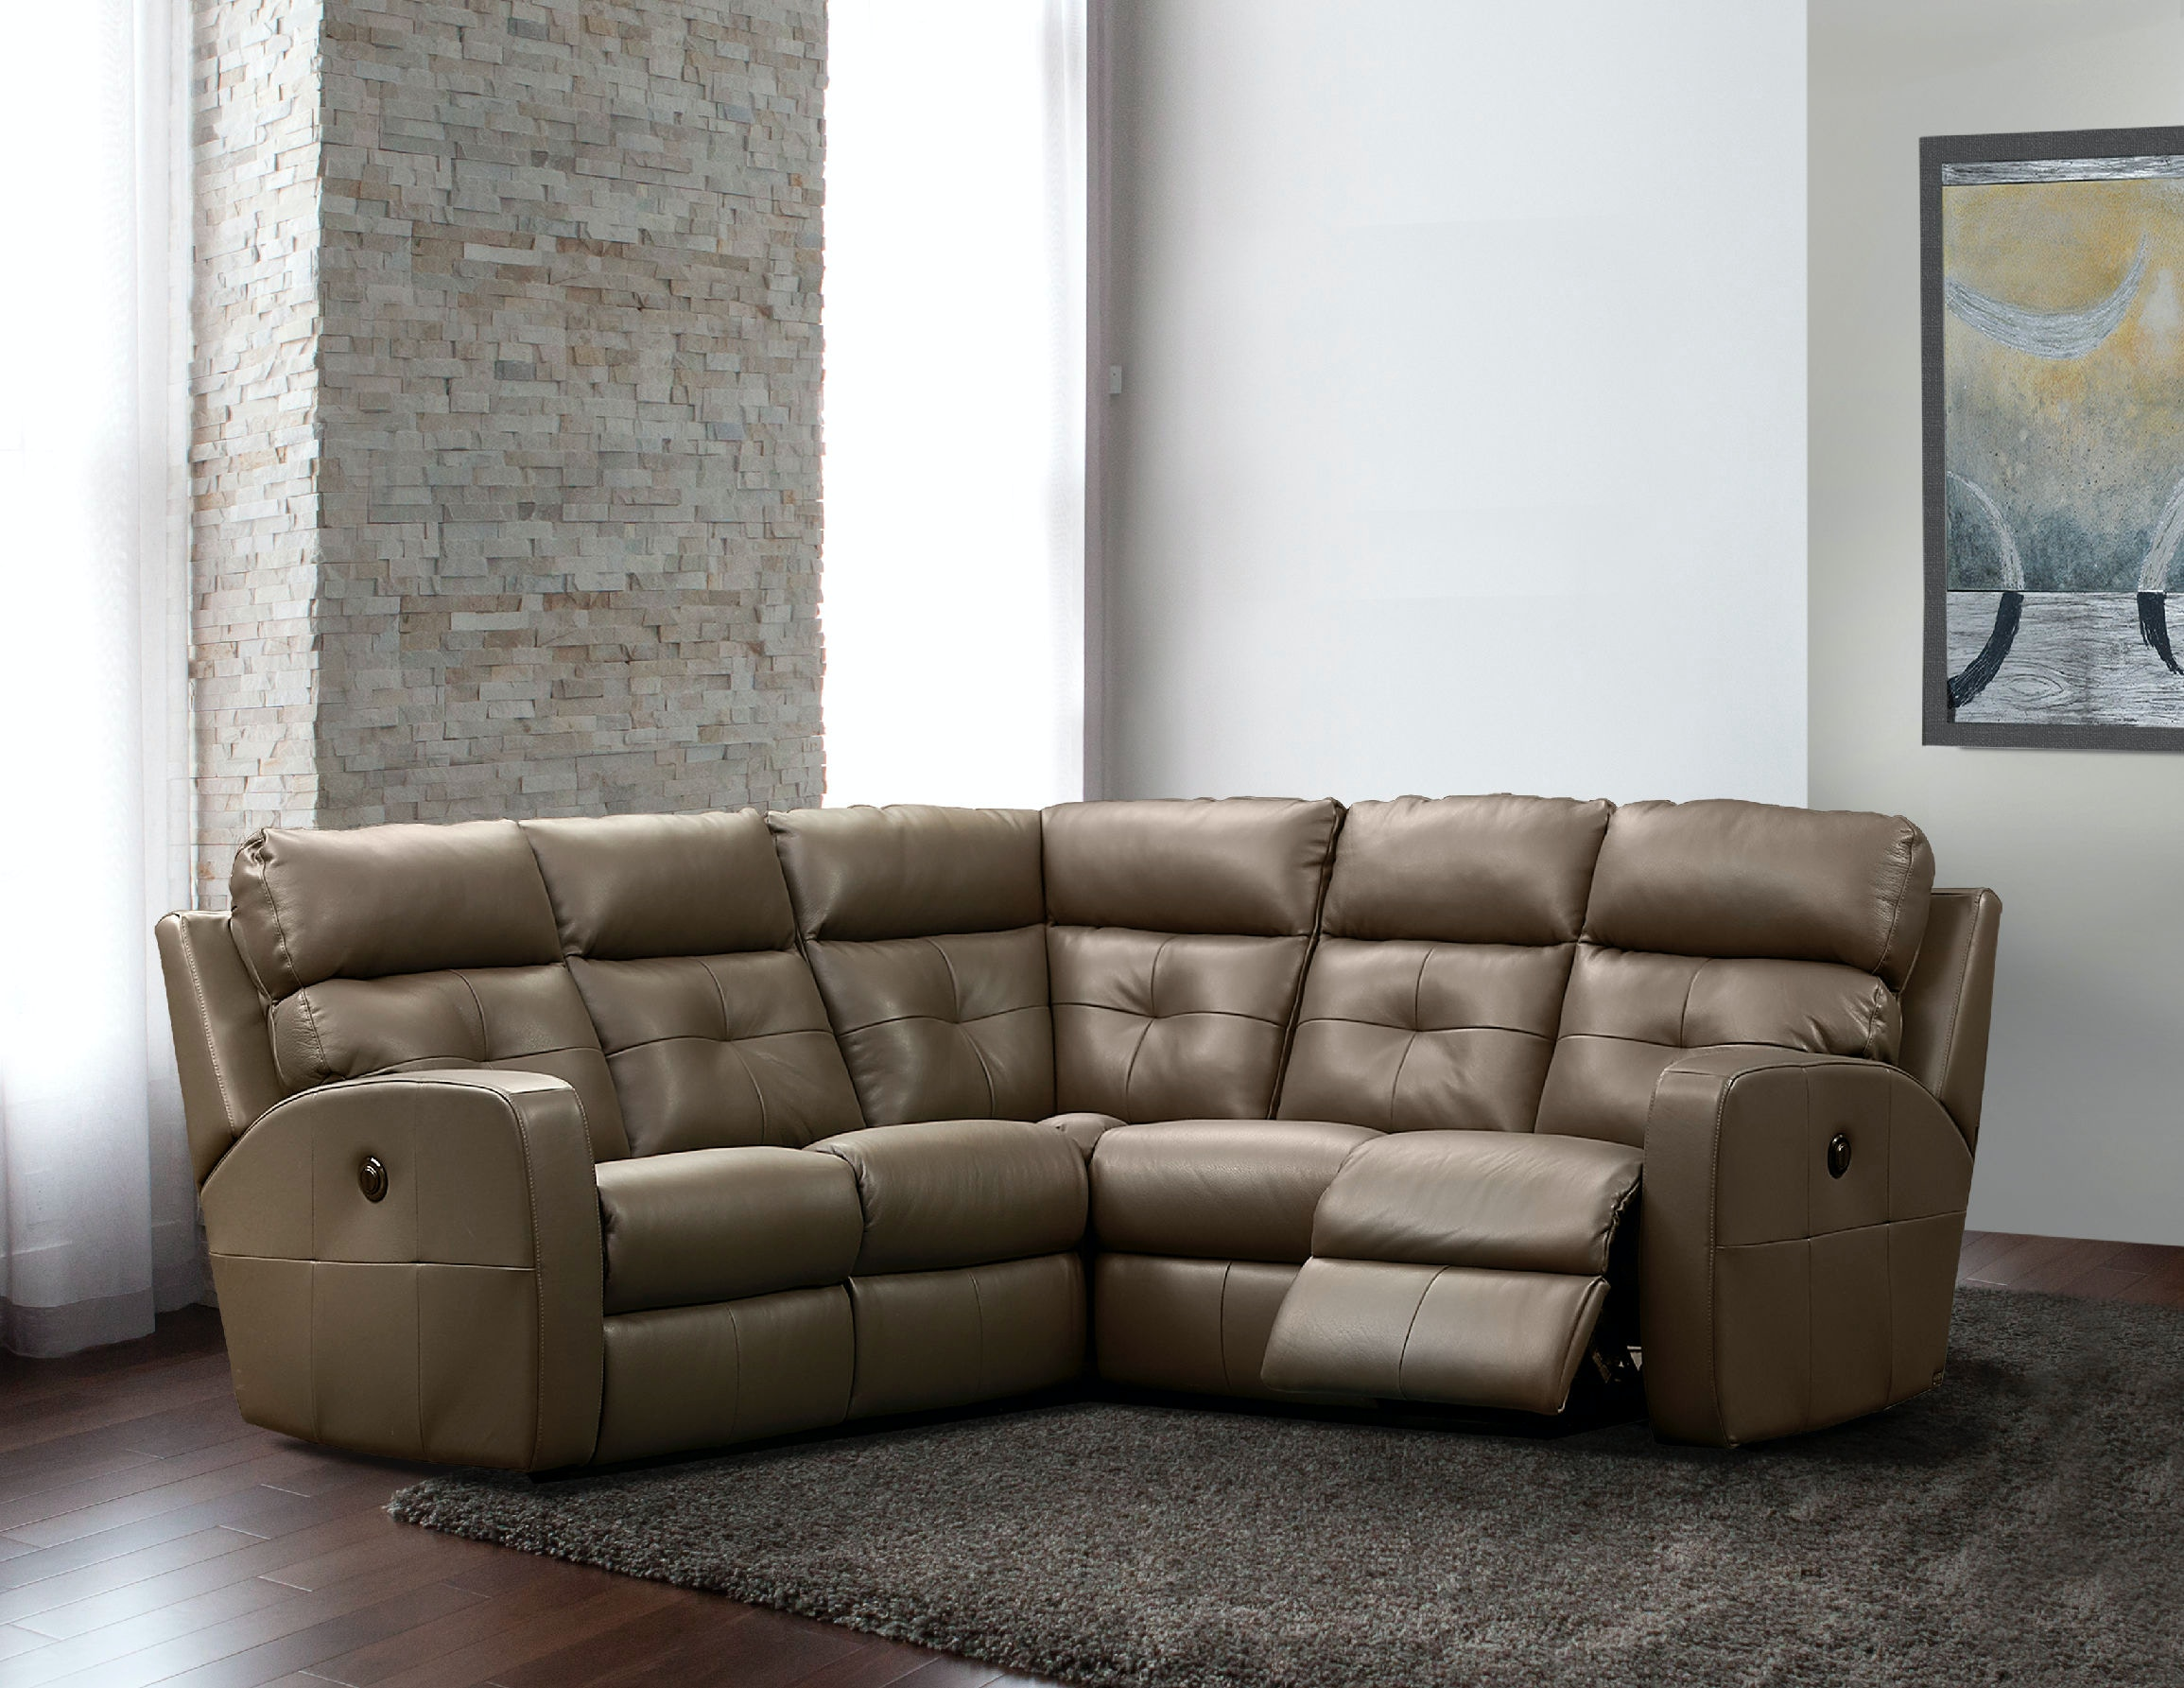 Exceptional Elran Sectional ER4047 I